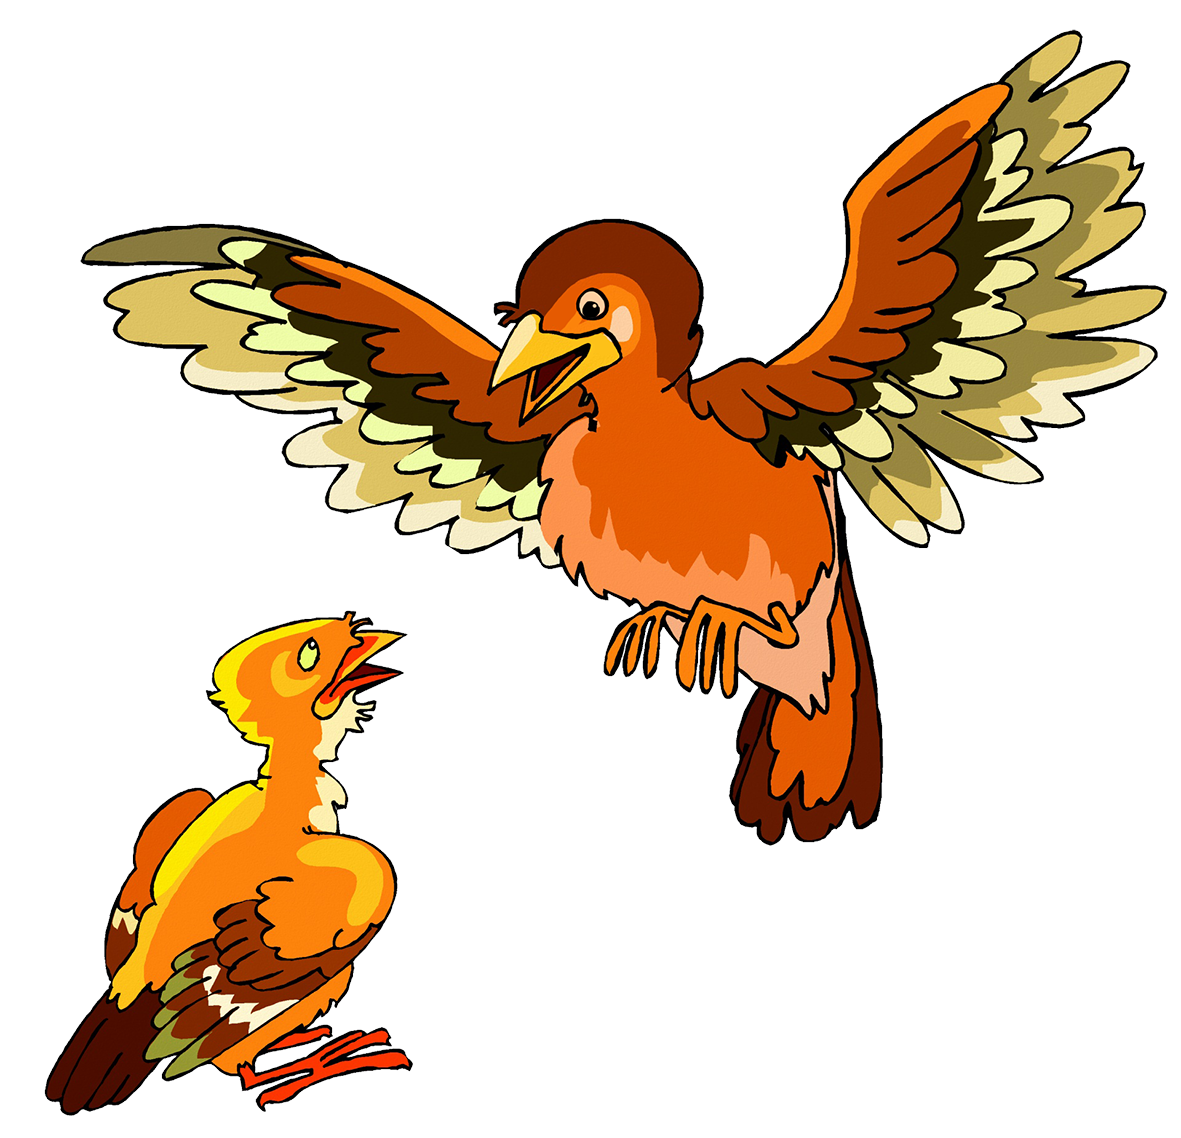 flying bird and chick